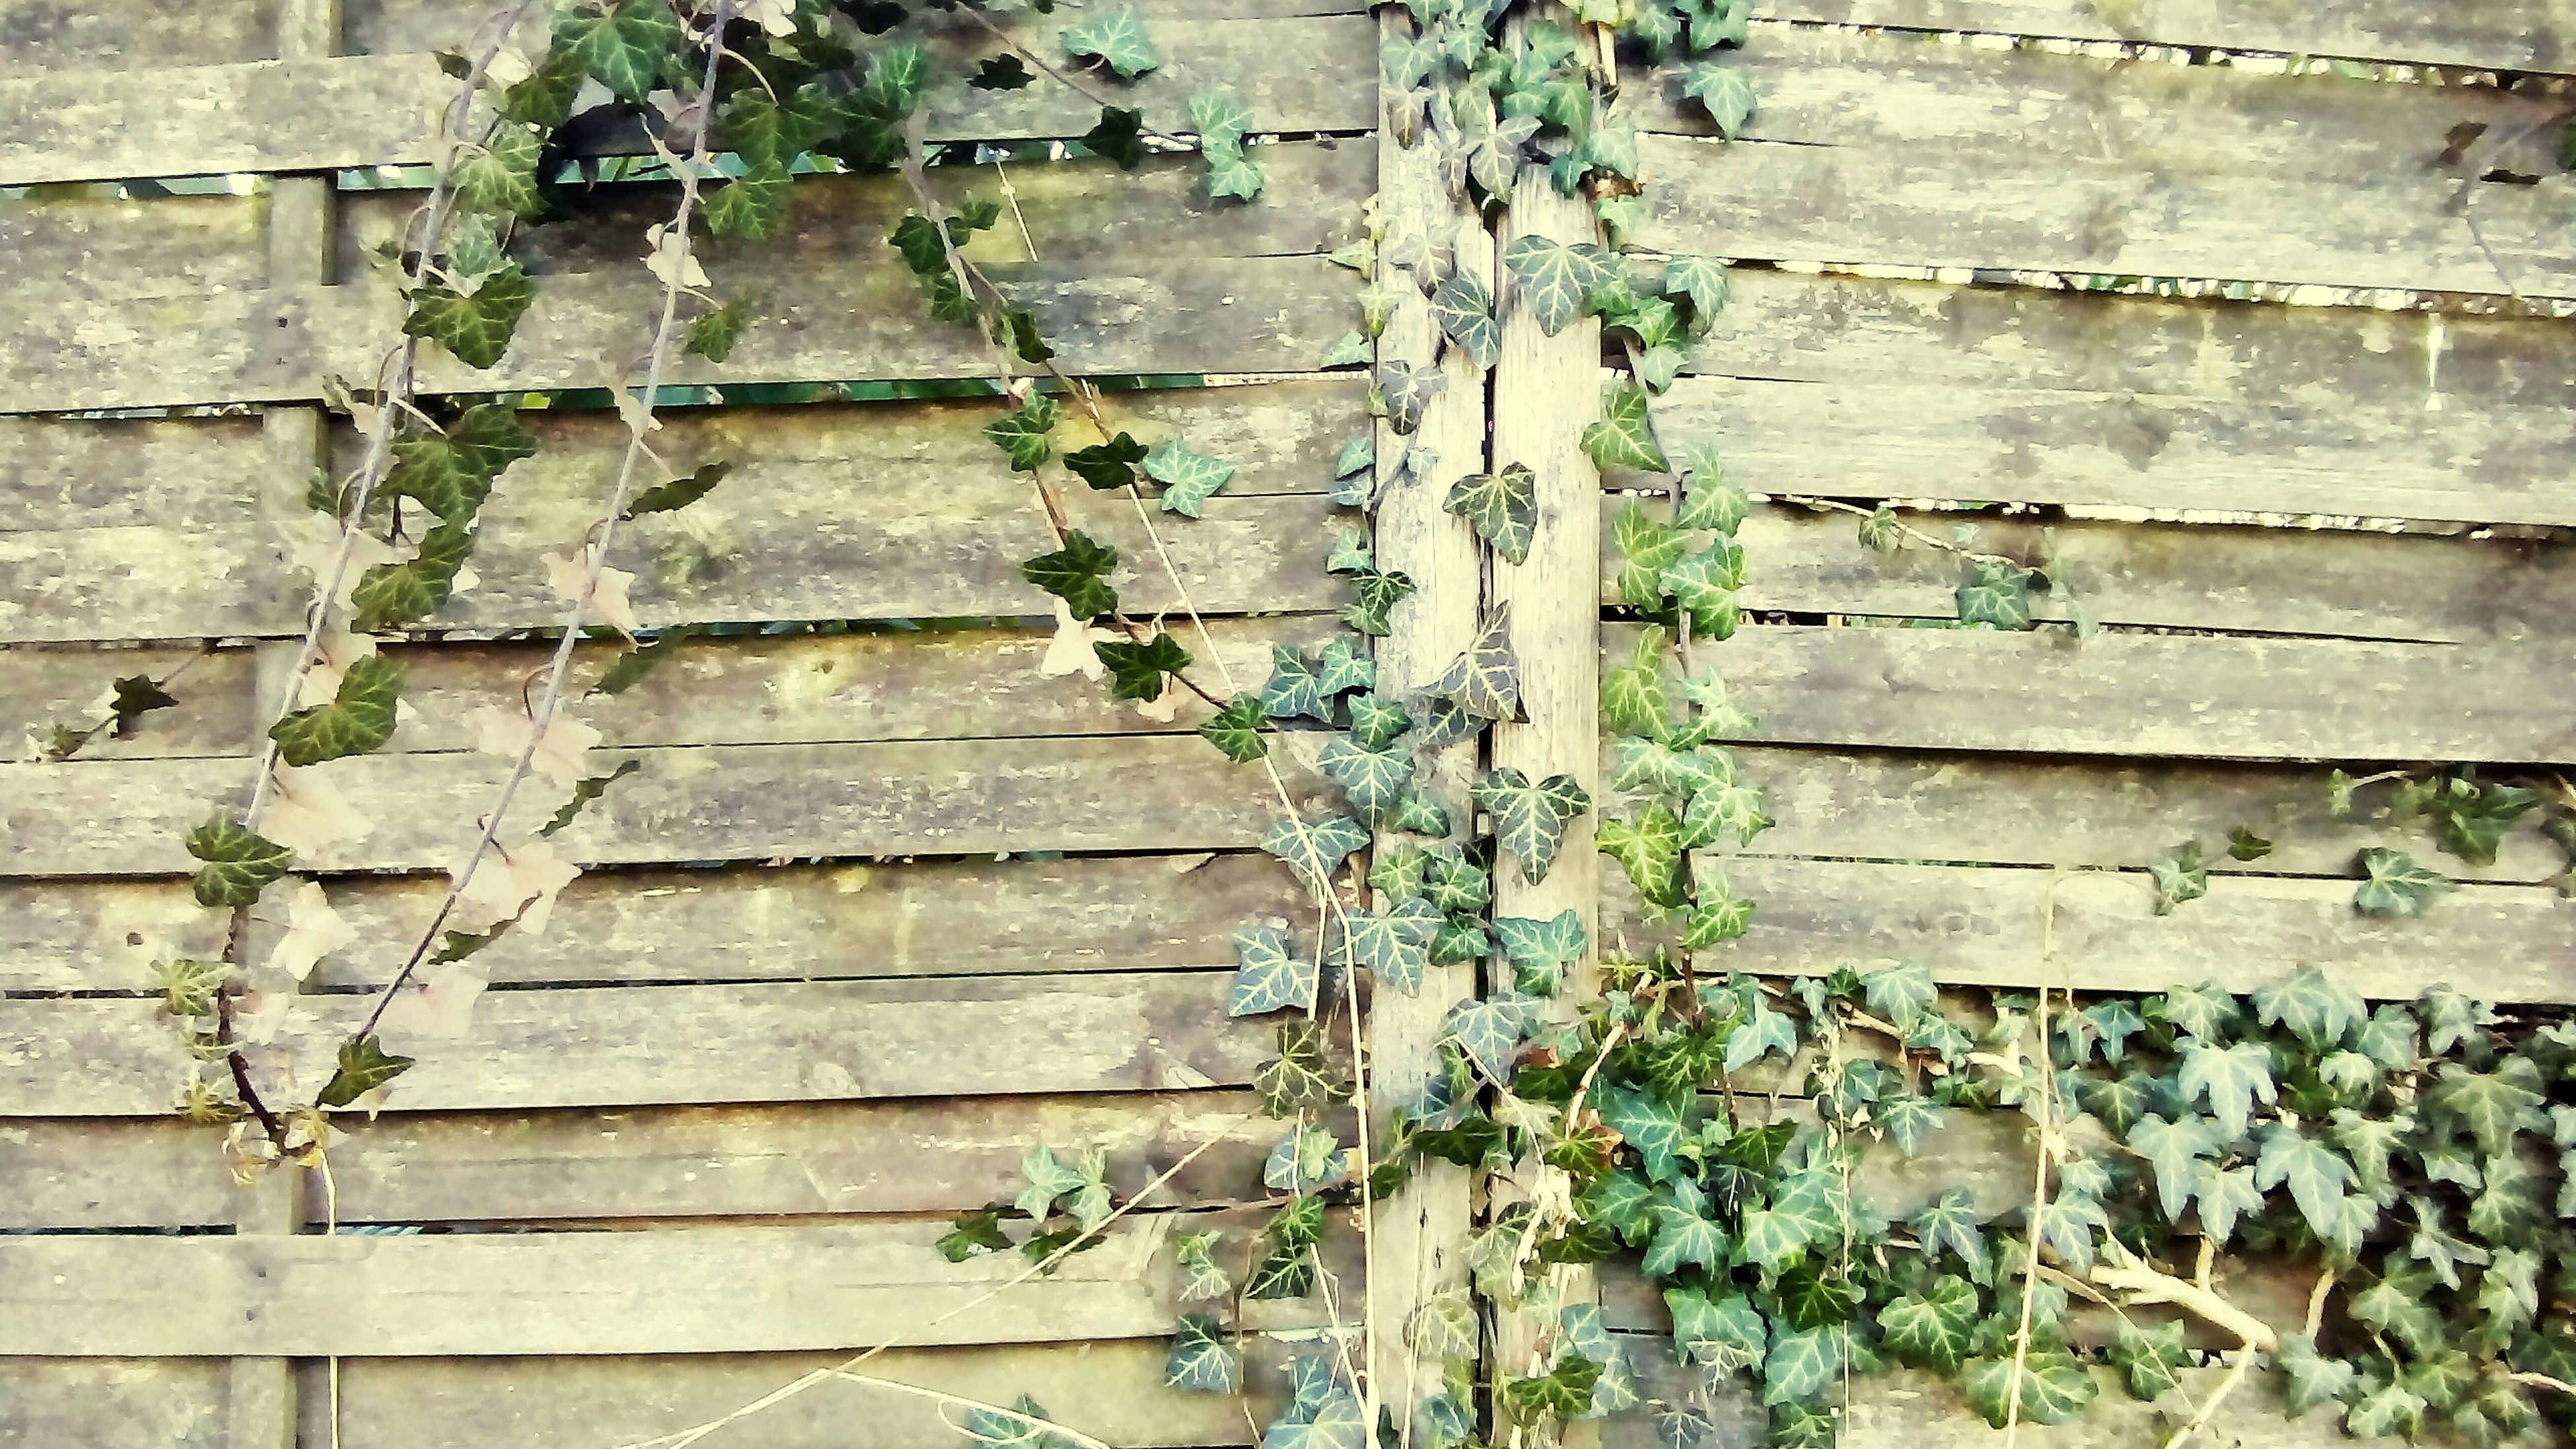 architecture, built structure, building exterior, brick wall, wall - building feature, weathered, old, full frame, plant, wood - material, ivy, wall, backgrounds, house, growth, stone wall, pattern, damaged, textured, outdoors